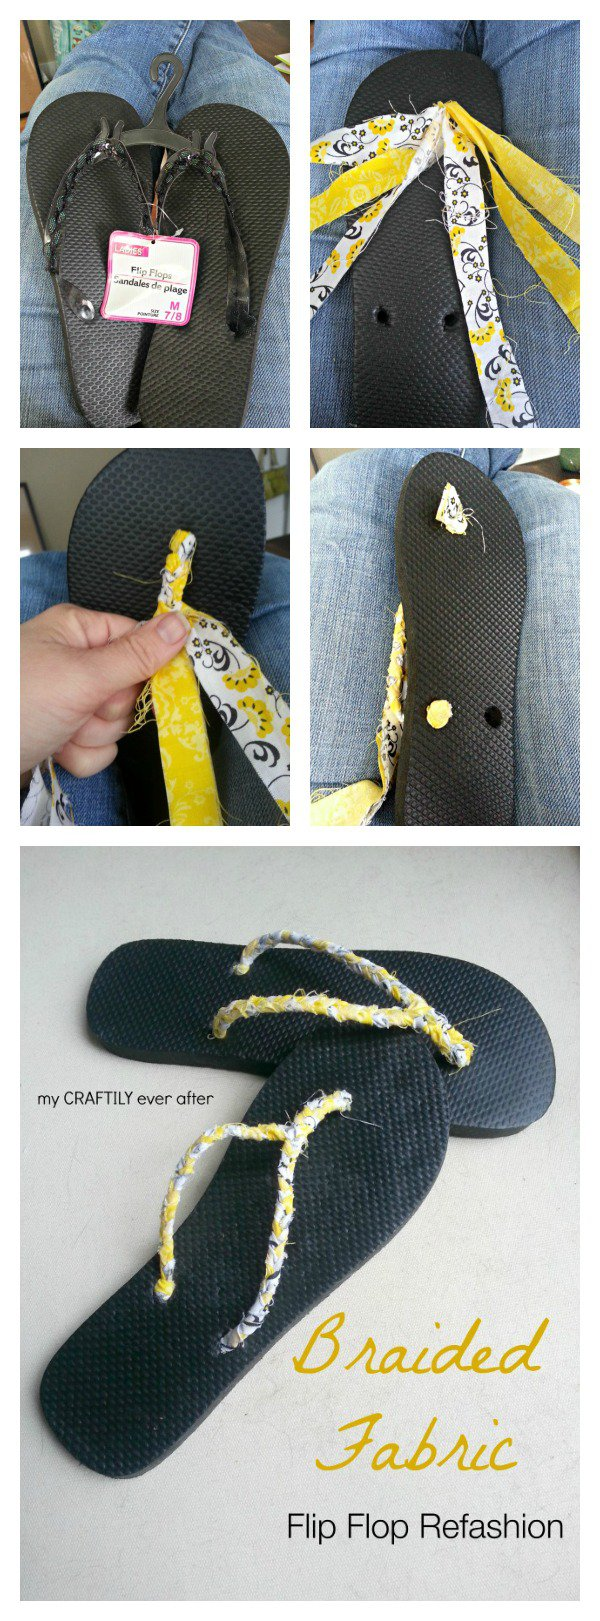 DIY Braided Fabric Slippers